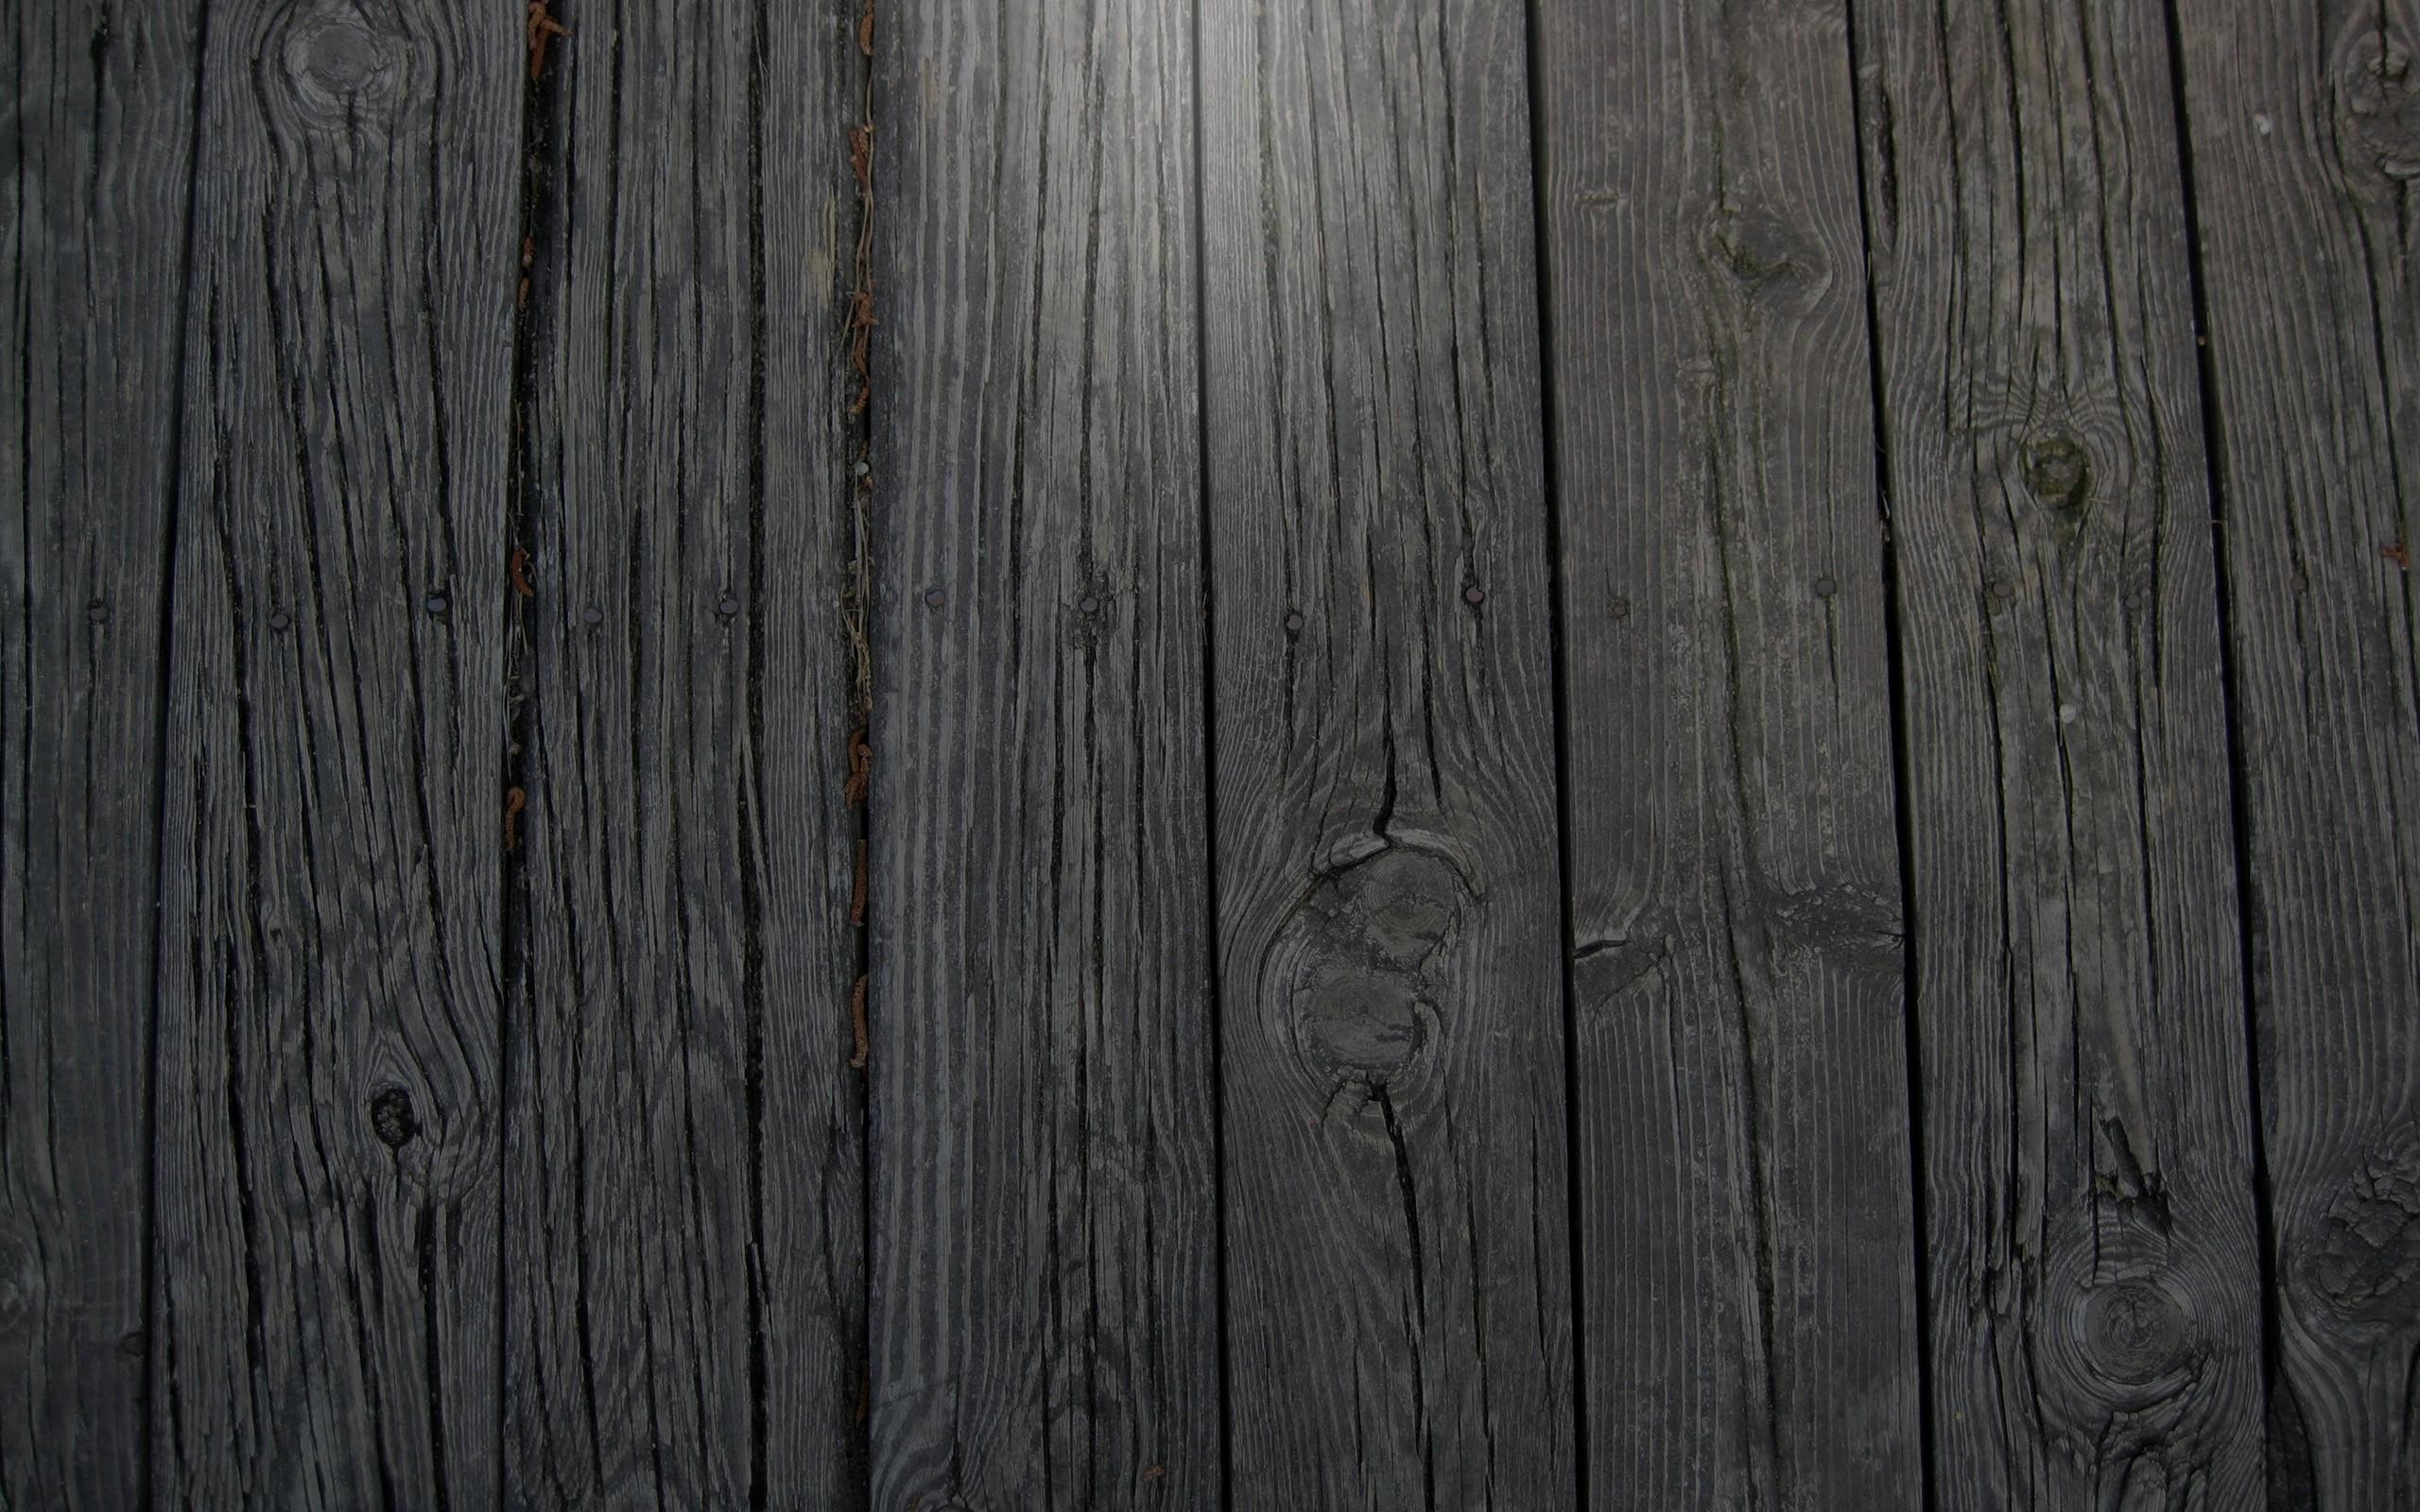 free awesome black wood images on your mobile free awesome black wood images on your